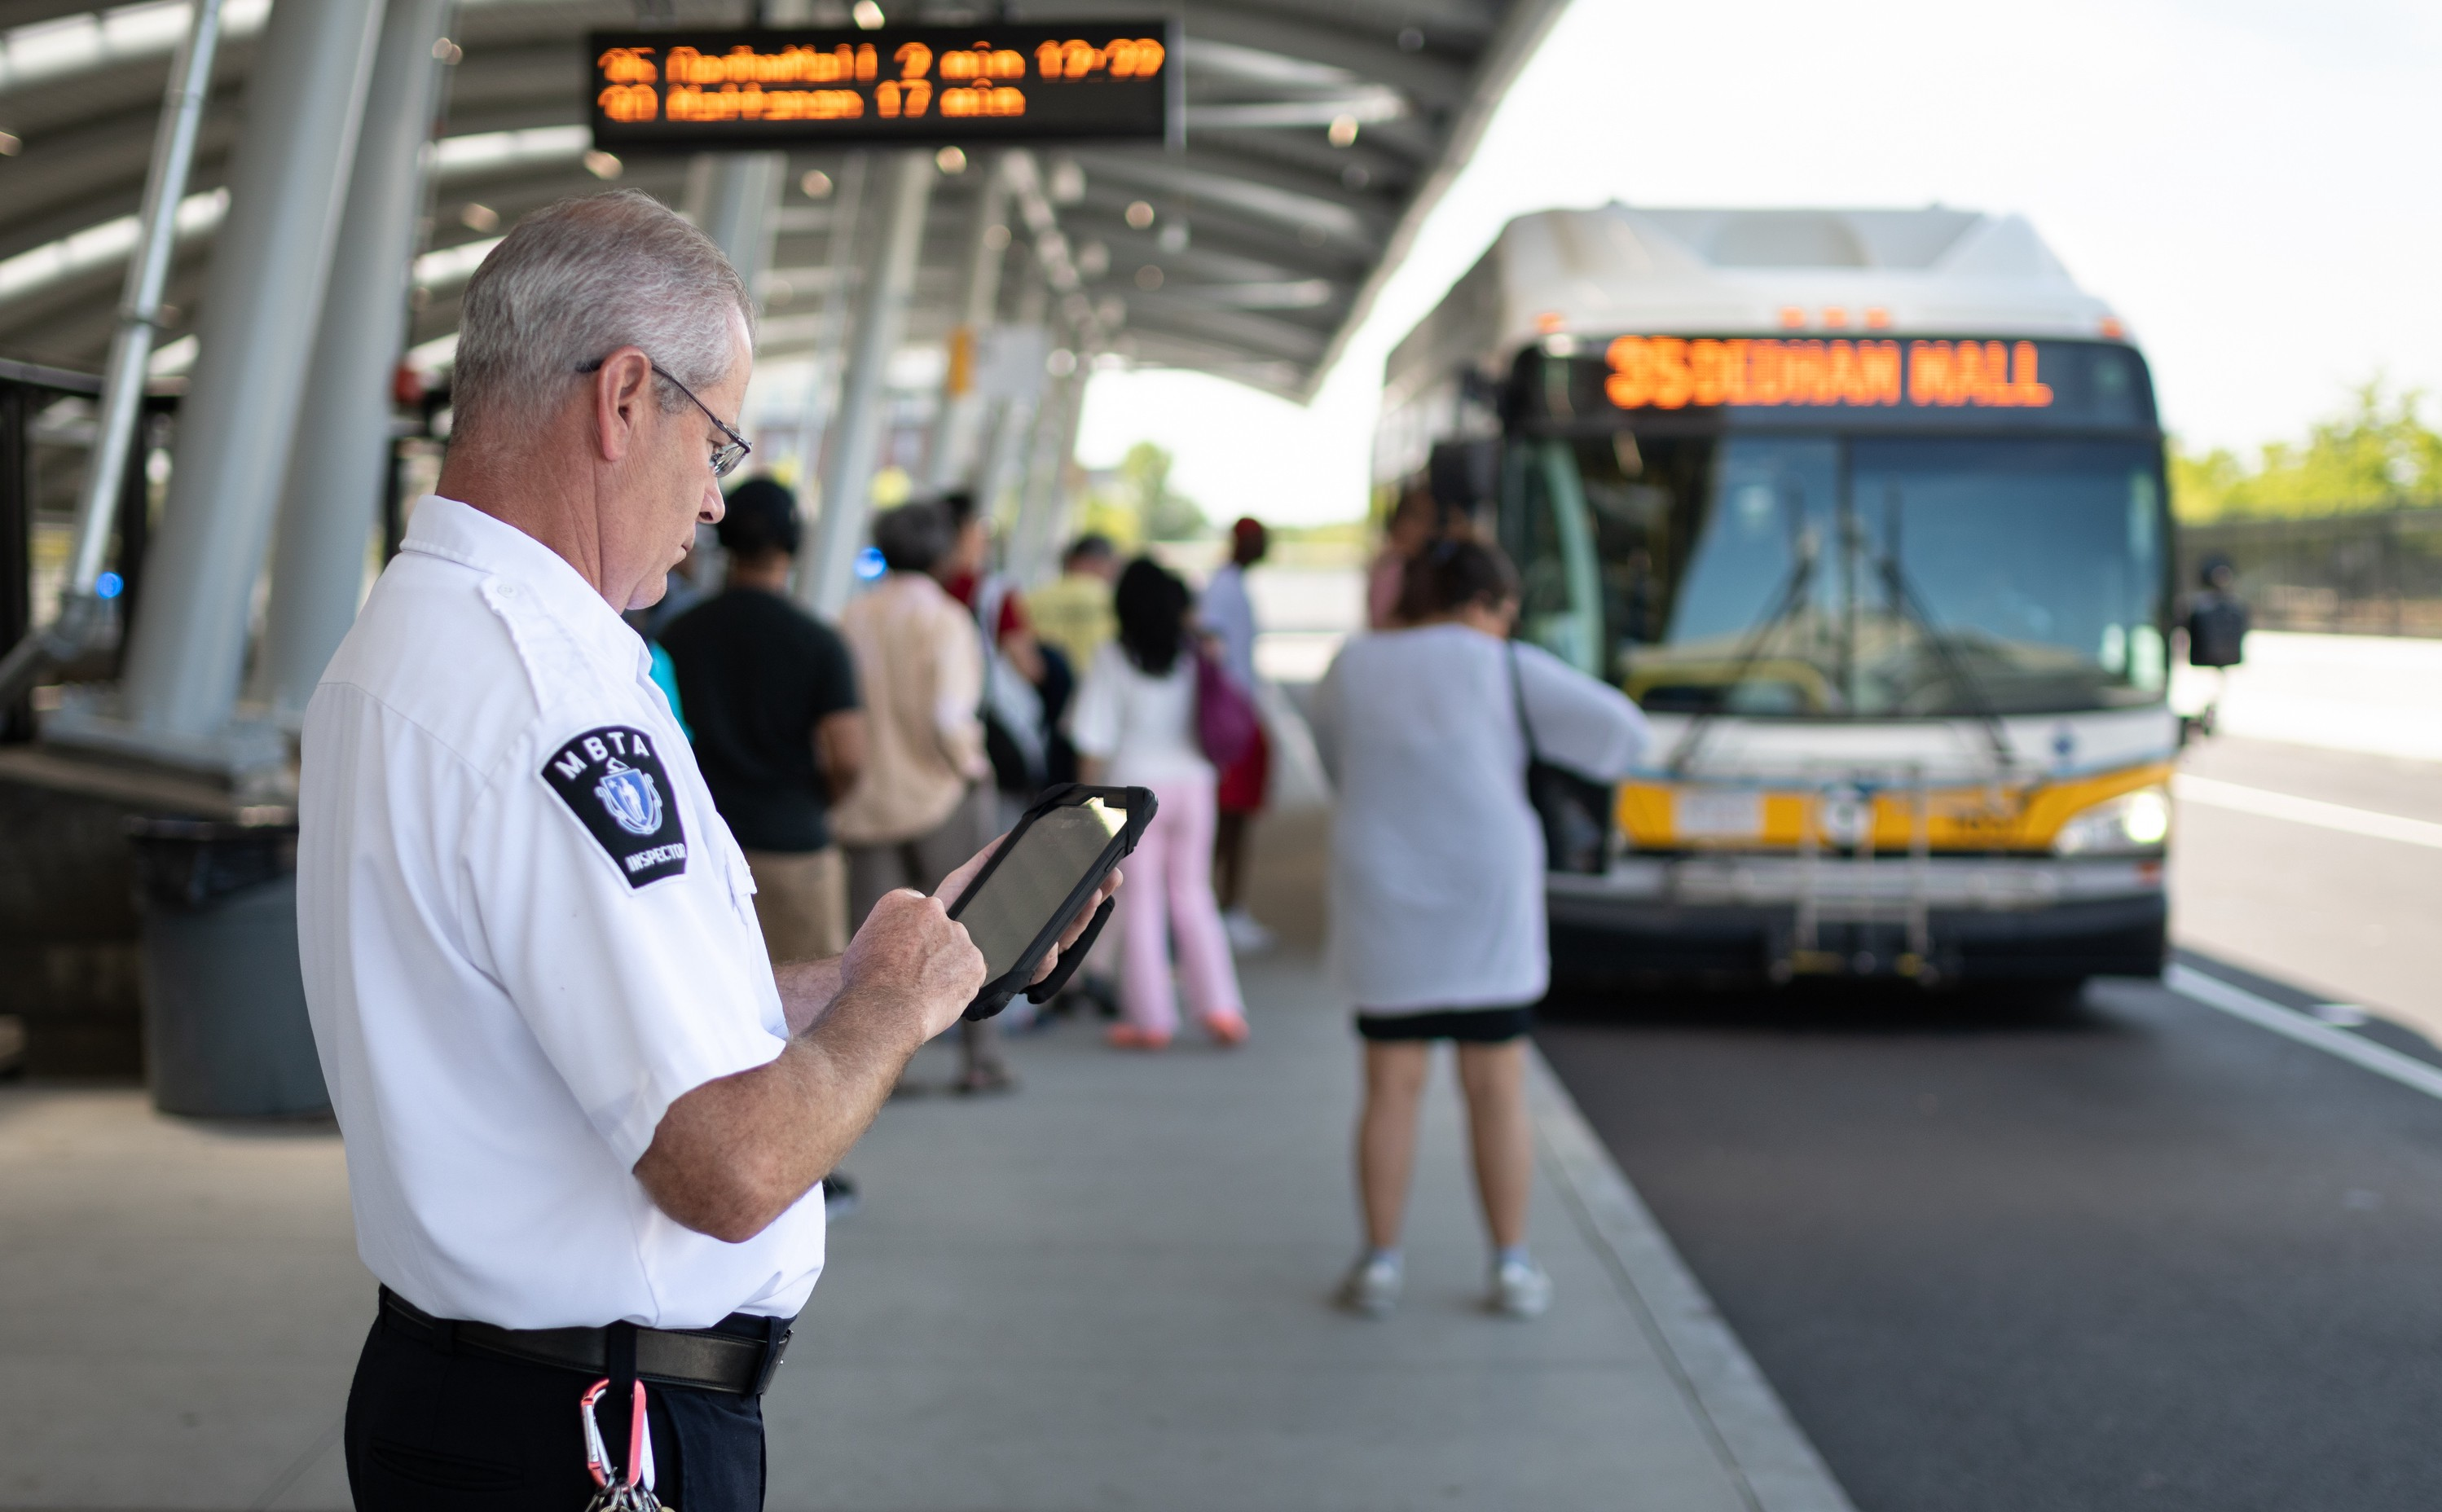 A uniformed MBTA employee uses a tablet at a busway with passengers boarding a bus in the background.